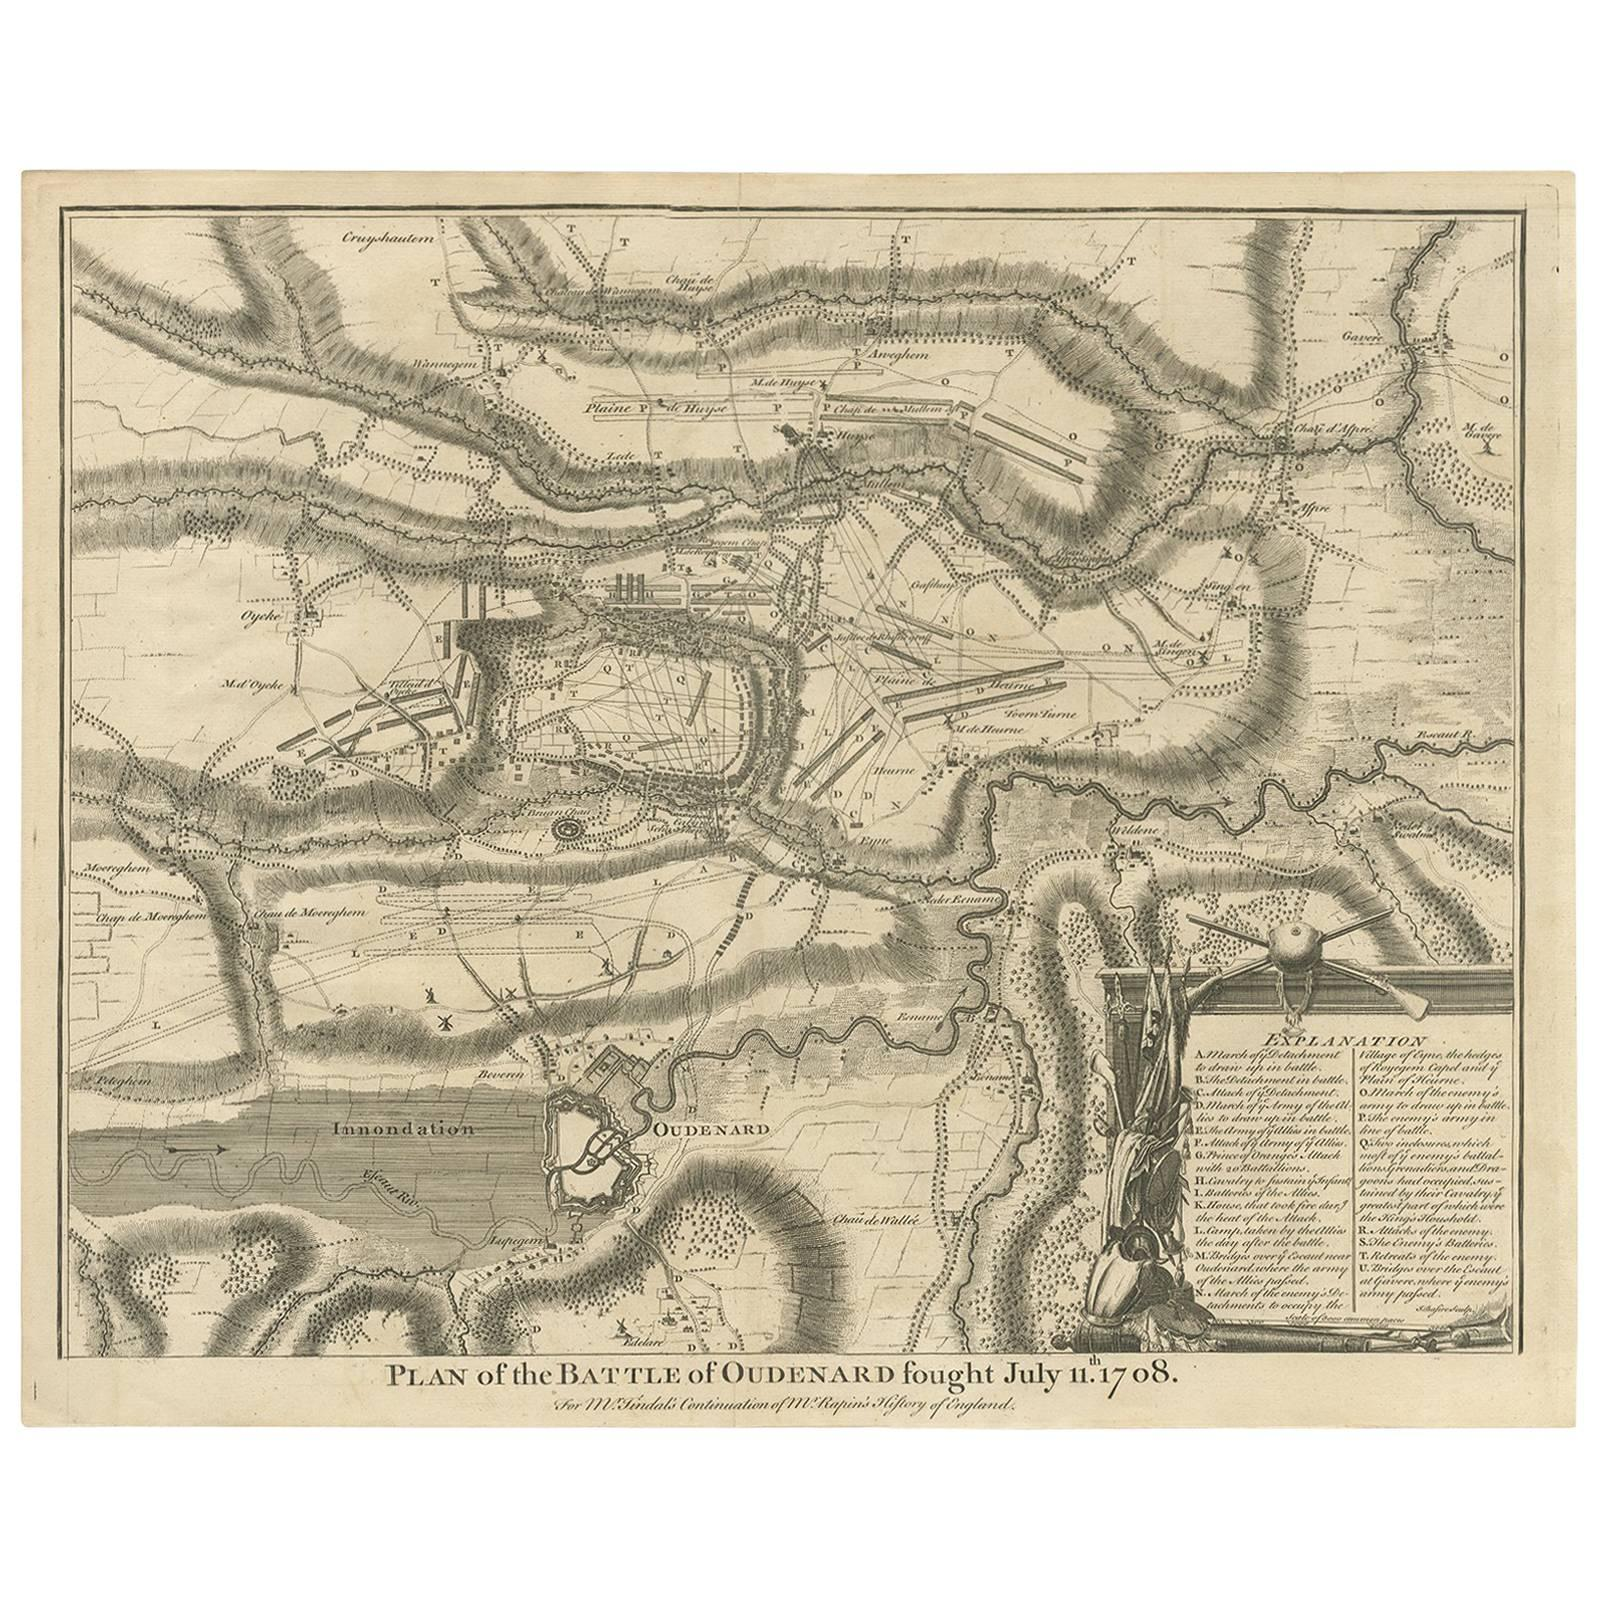 Antique Print of the Battle of Oudenard by I. Basire, 1751